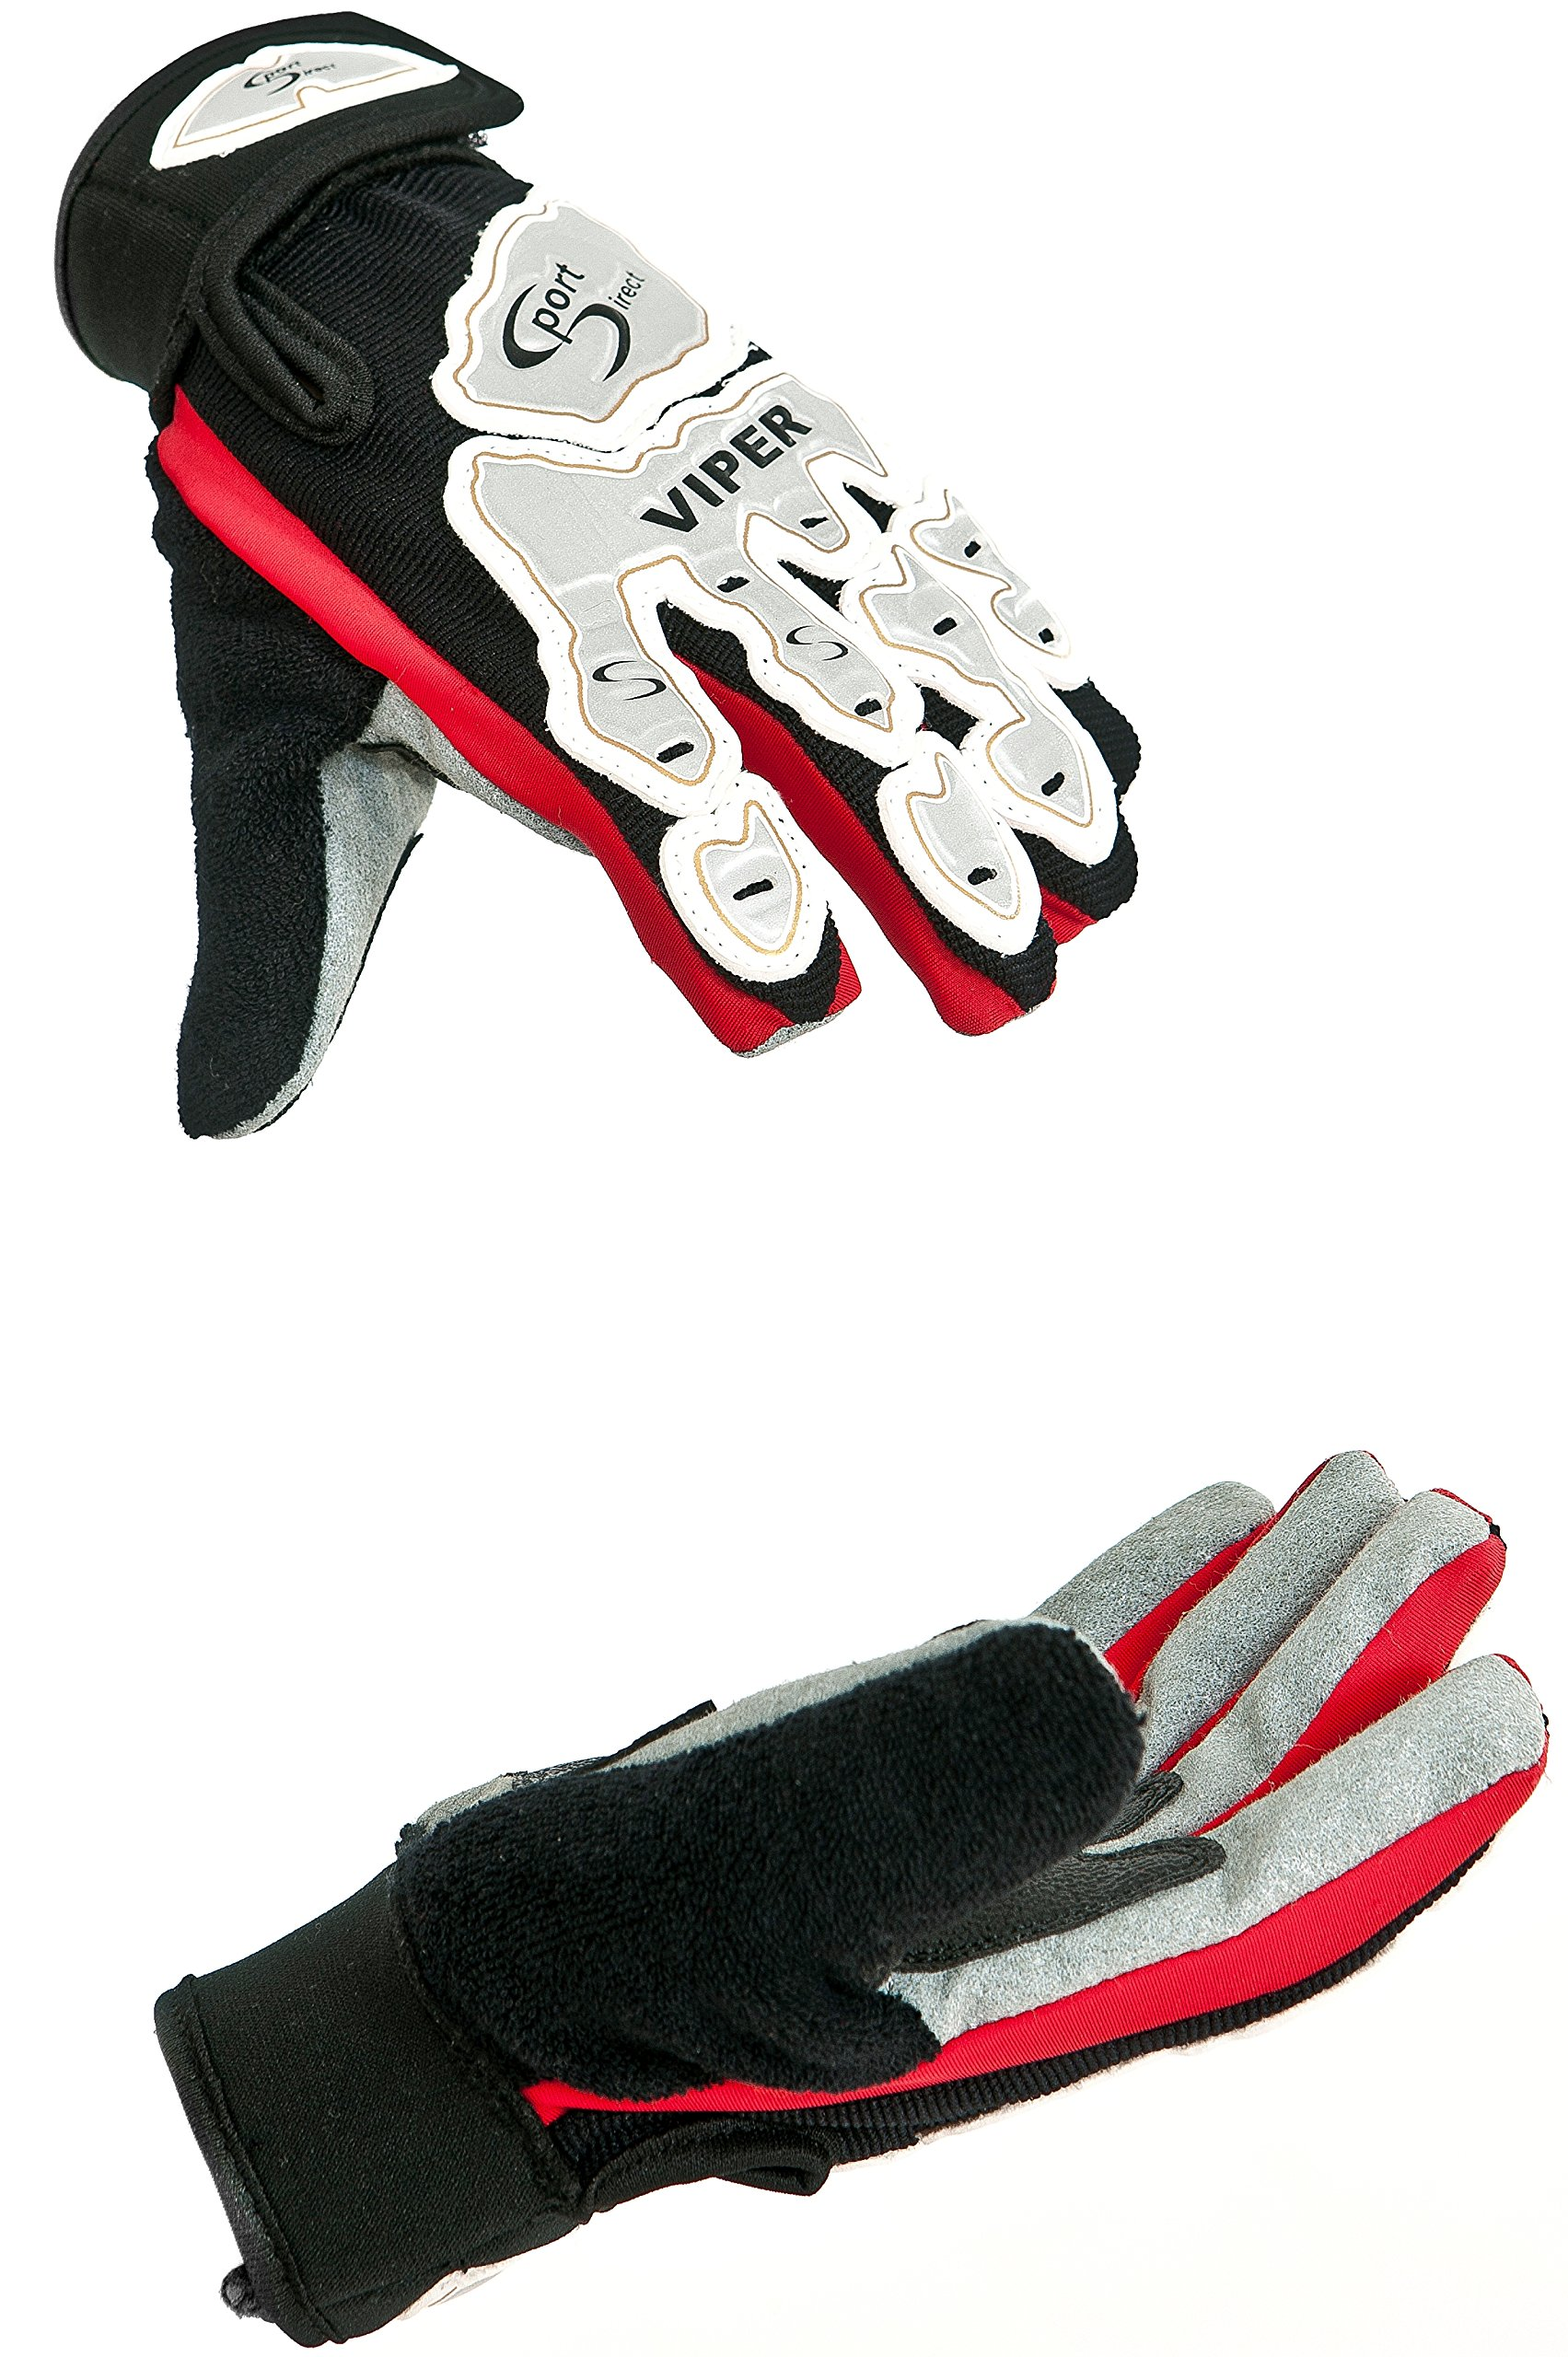 Sport DirectTM Bicycle Bike Glove BMX Viper Junior Small